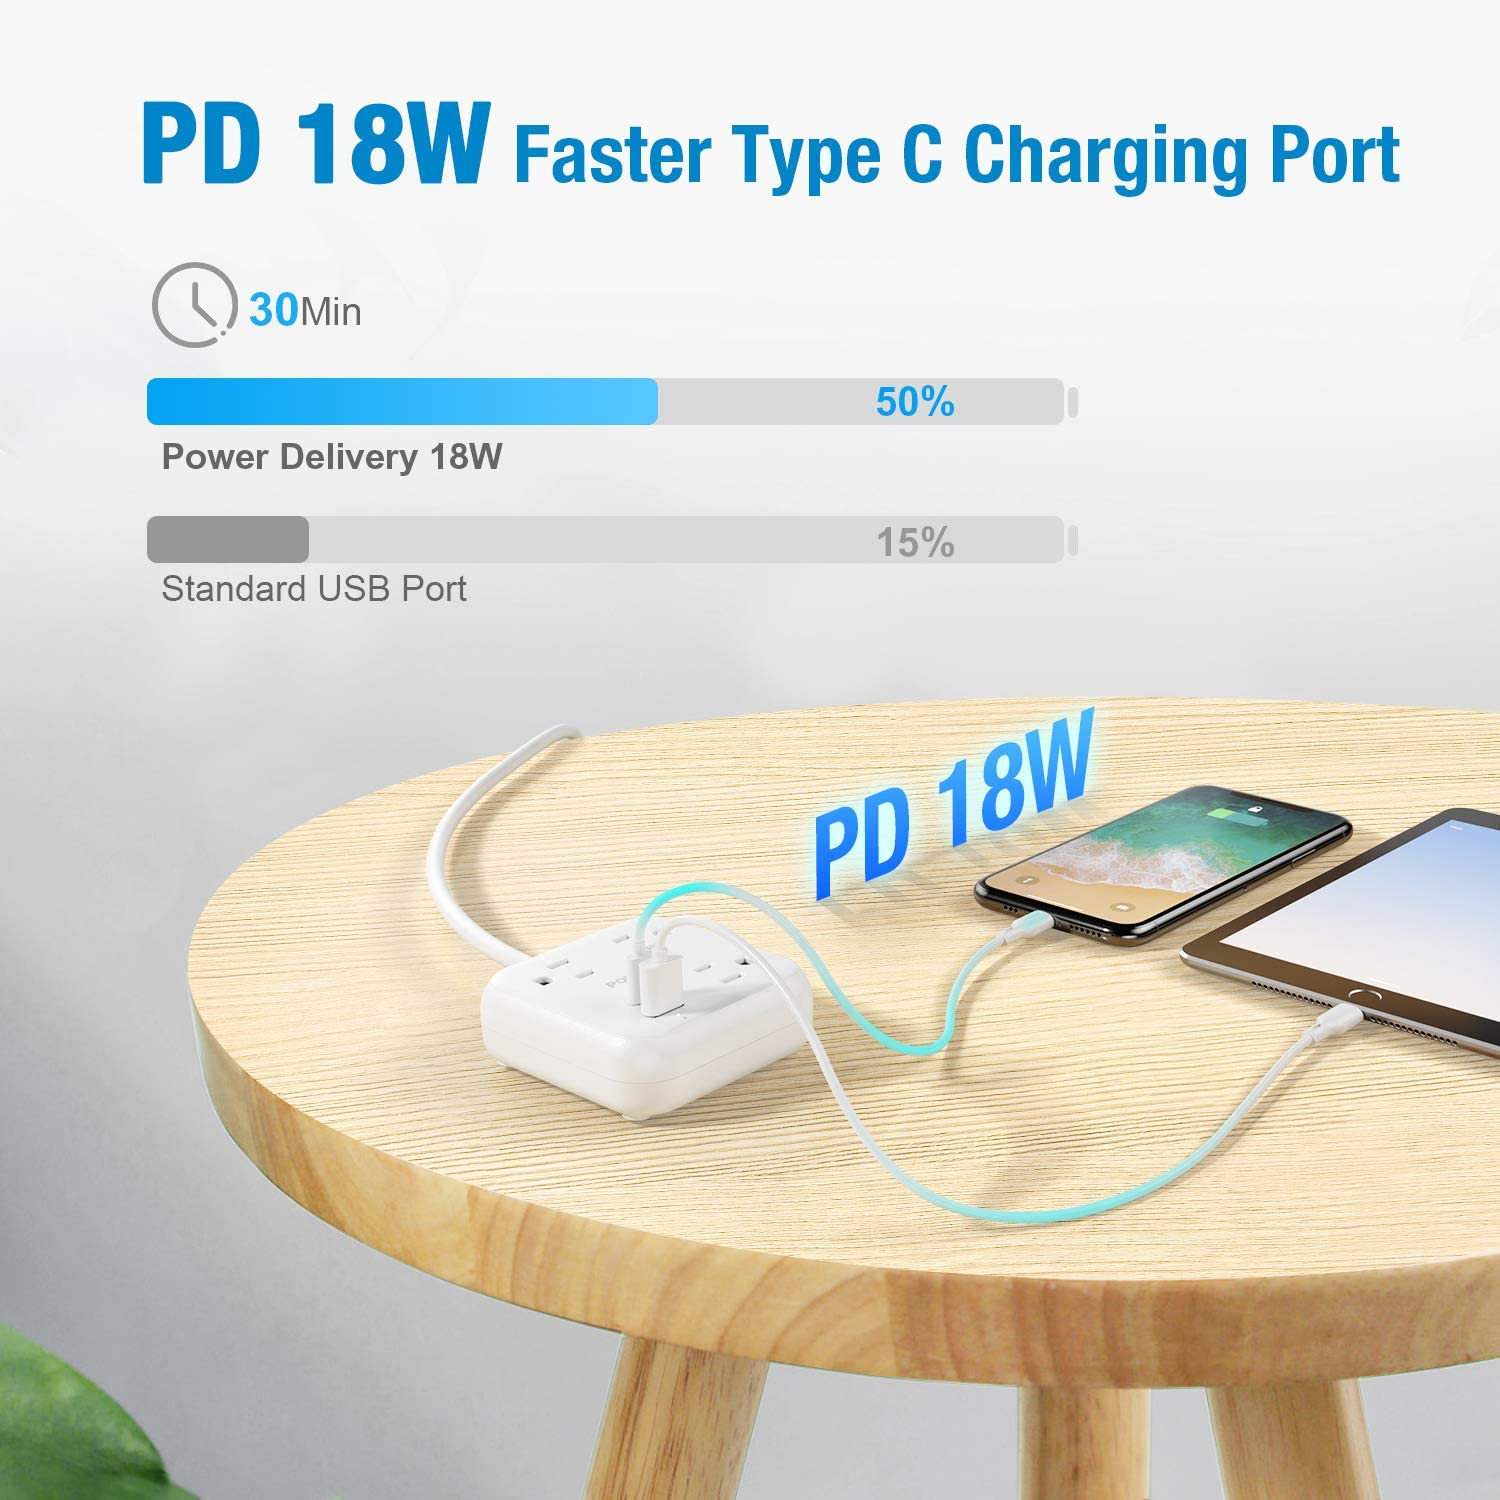 Hotel 18W USB C /& QC 3.0 USB A Port Flat Plug for Cruise Ship Dorm Room and Home Travel Power Strip Mini /& Portable with 3 Outlets POWERADD USB C Power Strip with Power Delivery 18W 5ft Cord